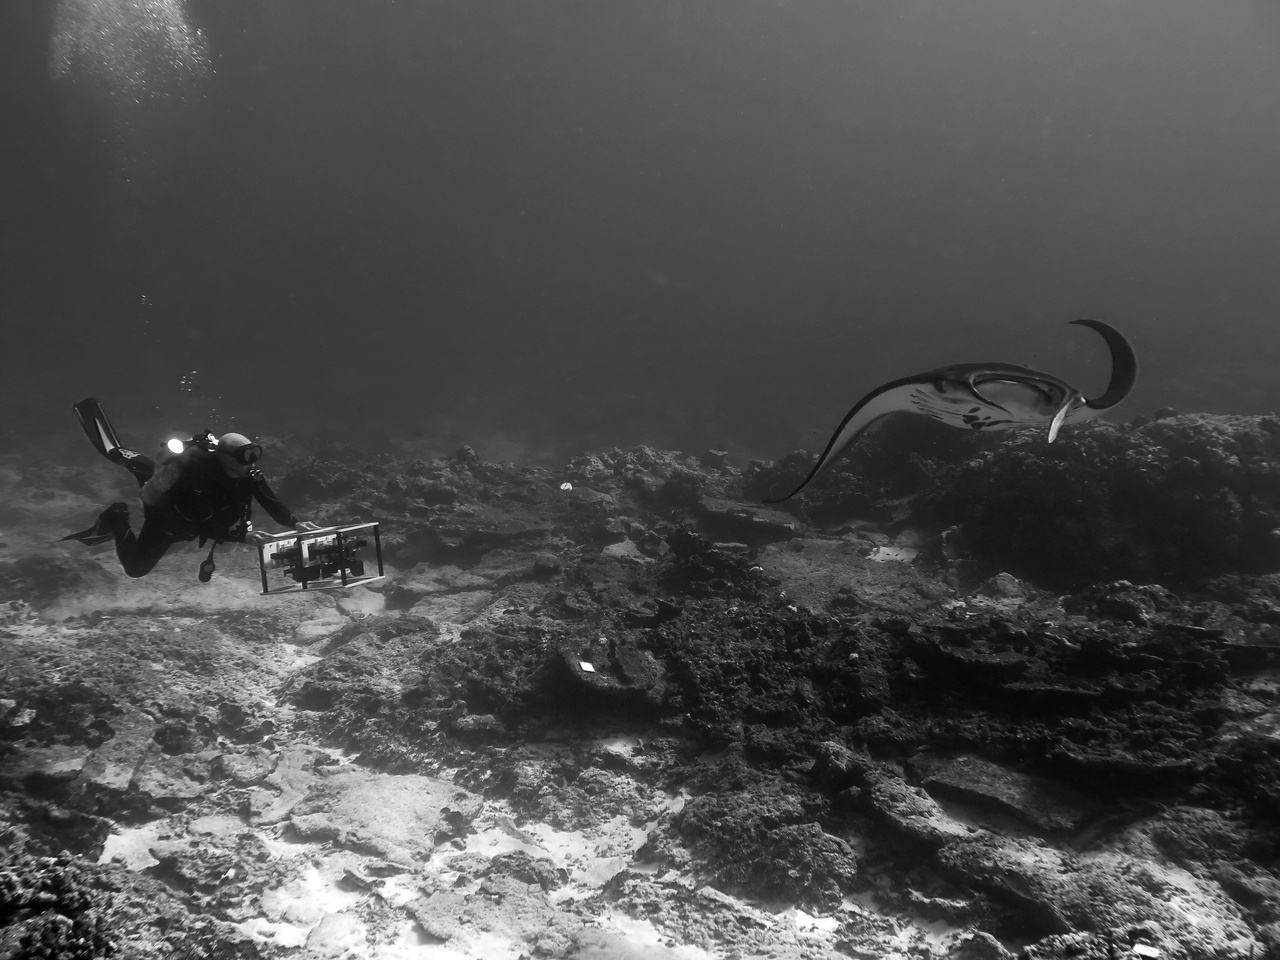 A manta ray supervises as scientist Ariel Halperin flies a camera rig to capture hundreds of images that will be stitched together into a 3D model of the reef. (Photo: NOAA Fisheries/Courtney Klepac)